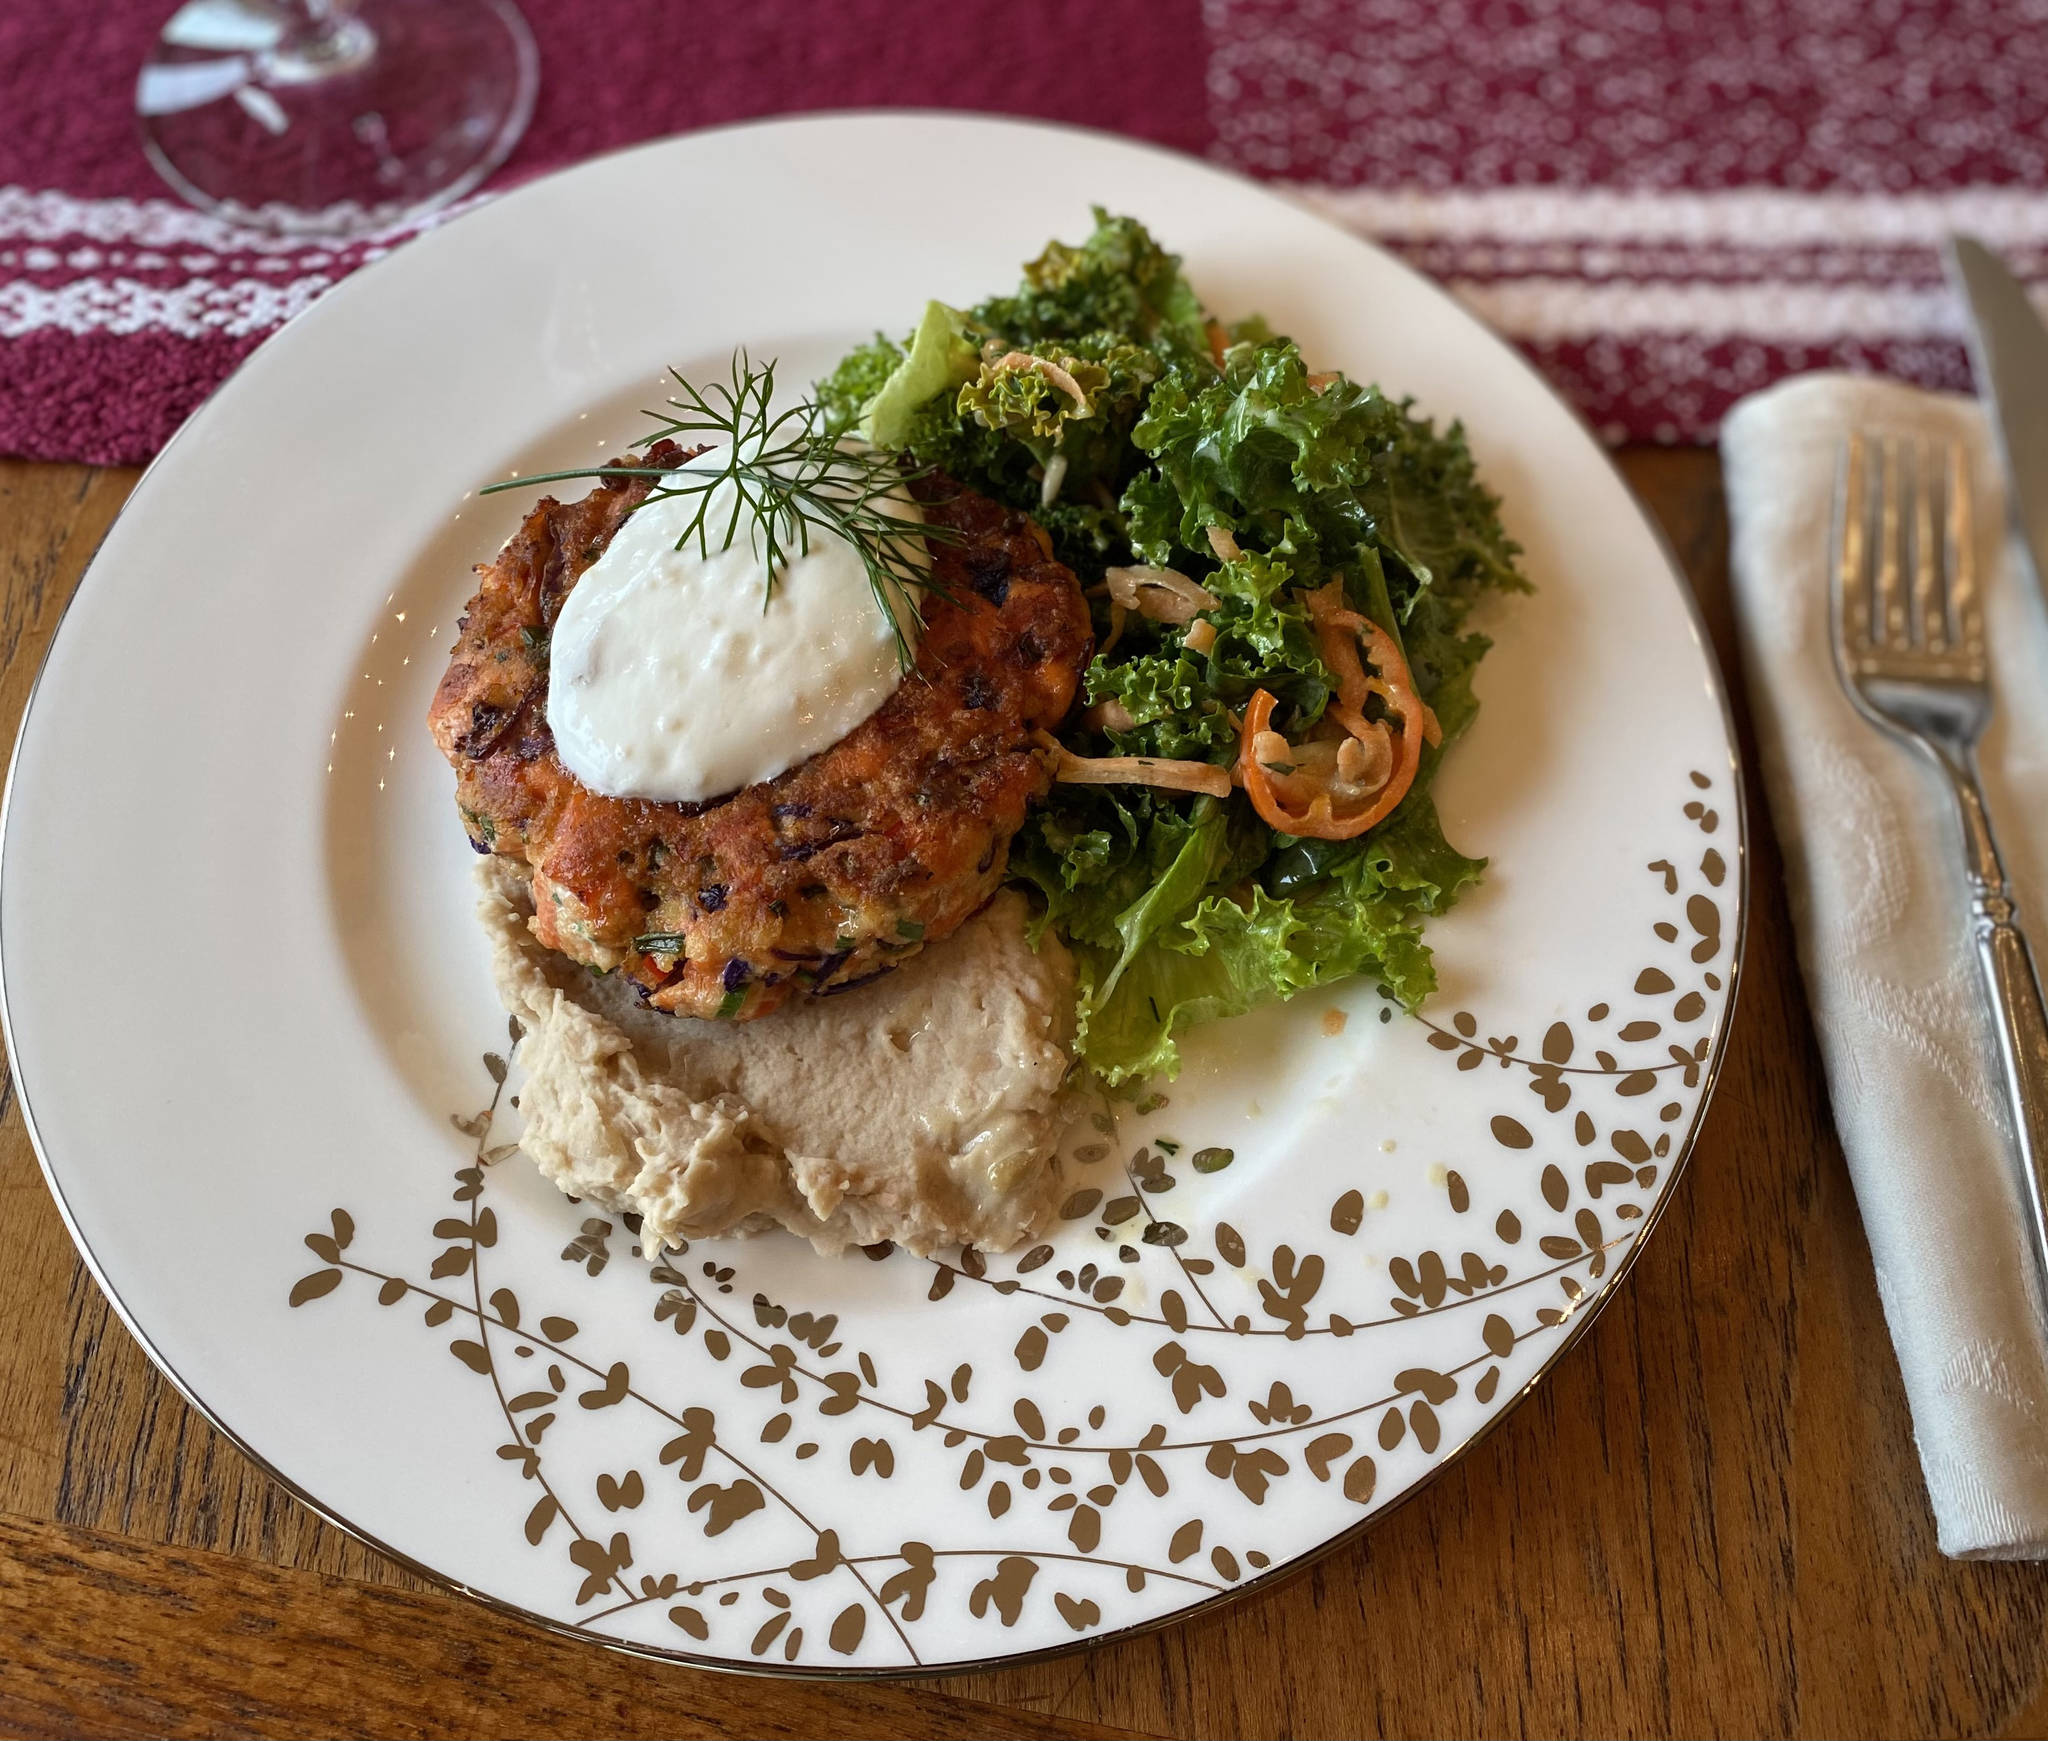 Bell pepper, cabbage and onions add flavor and texture to this salmon cake recipe. (Photo by Tress Dale/Peninsula Clarion)